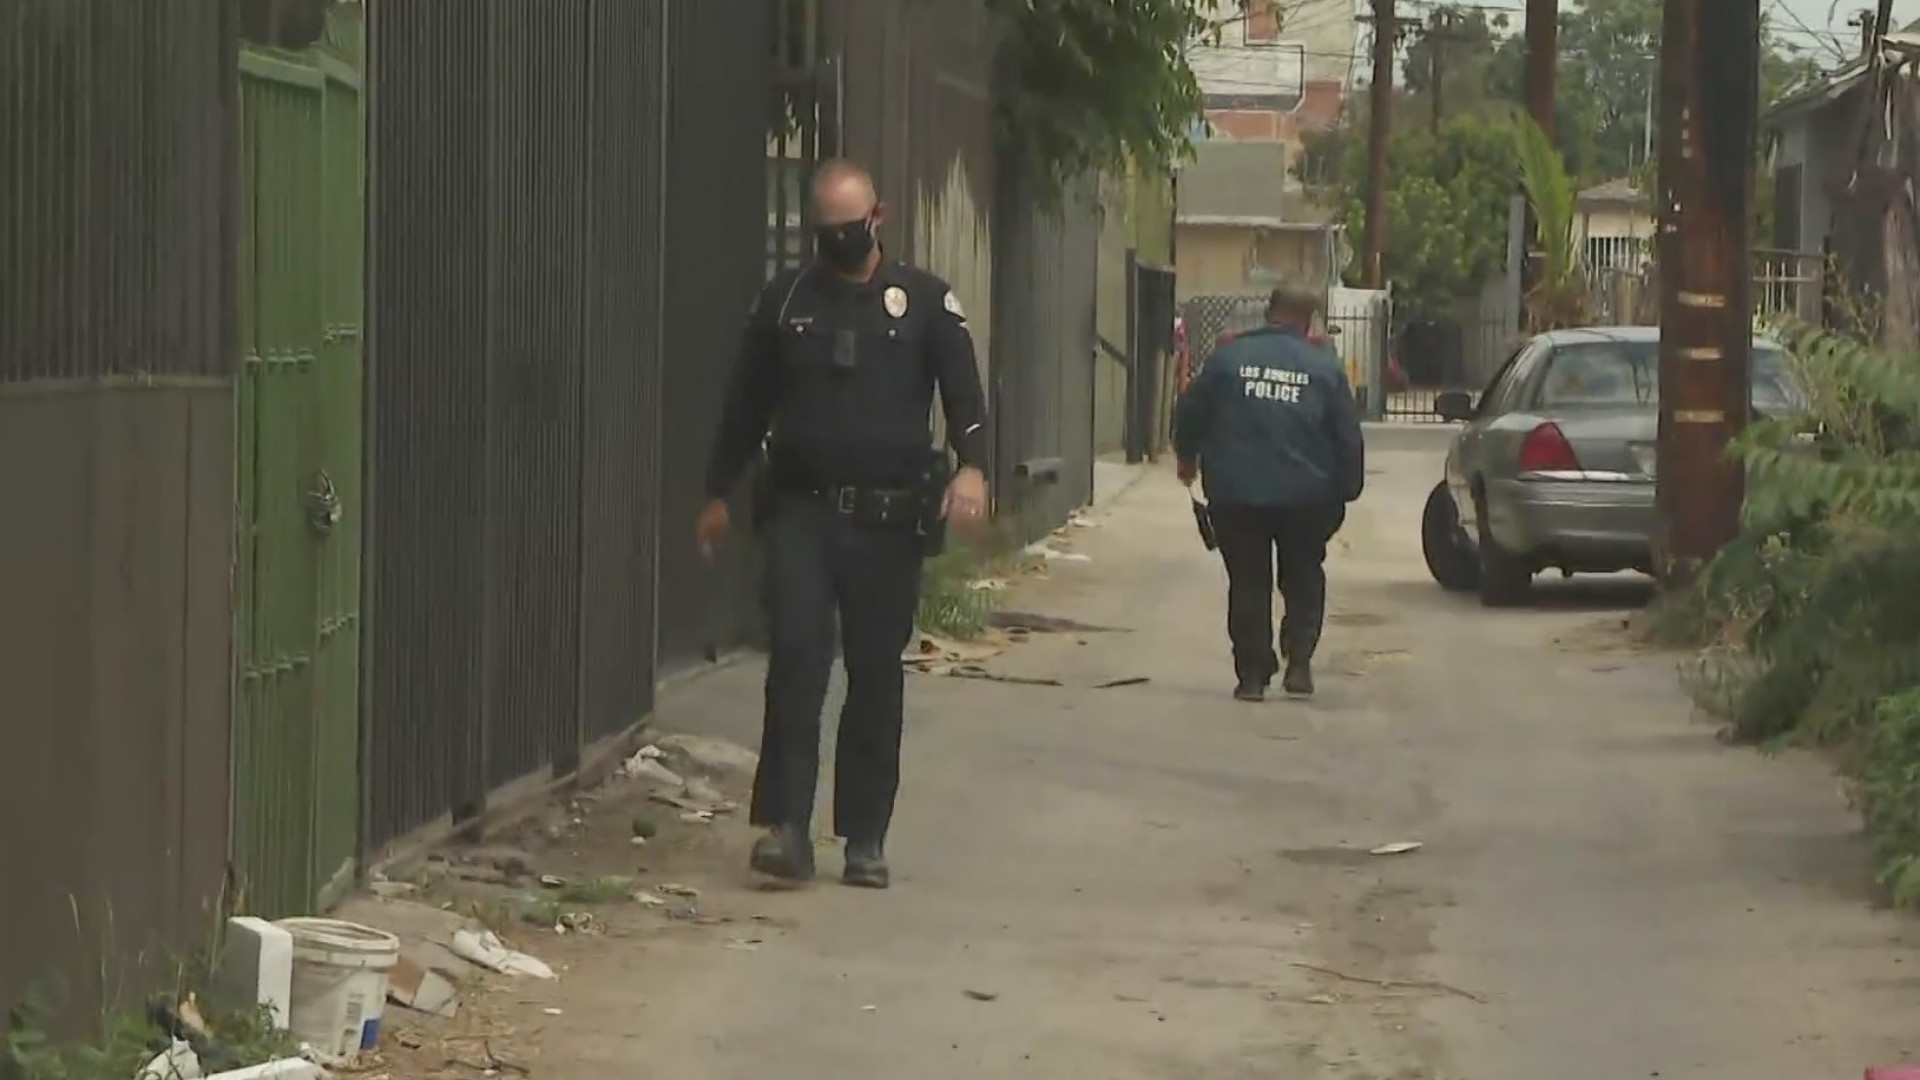 Investigators walk through an alleyway in the Florence neighborhood of South Los Angeles on Aug. 13, 2020, after a man was fatally struck in a hit-and-run crash there the night before. (KTLA)